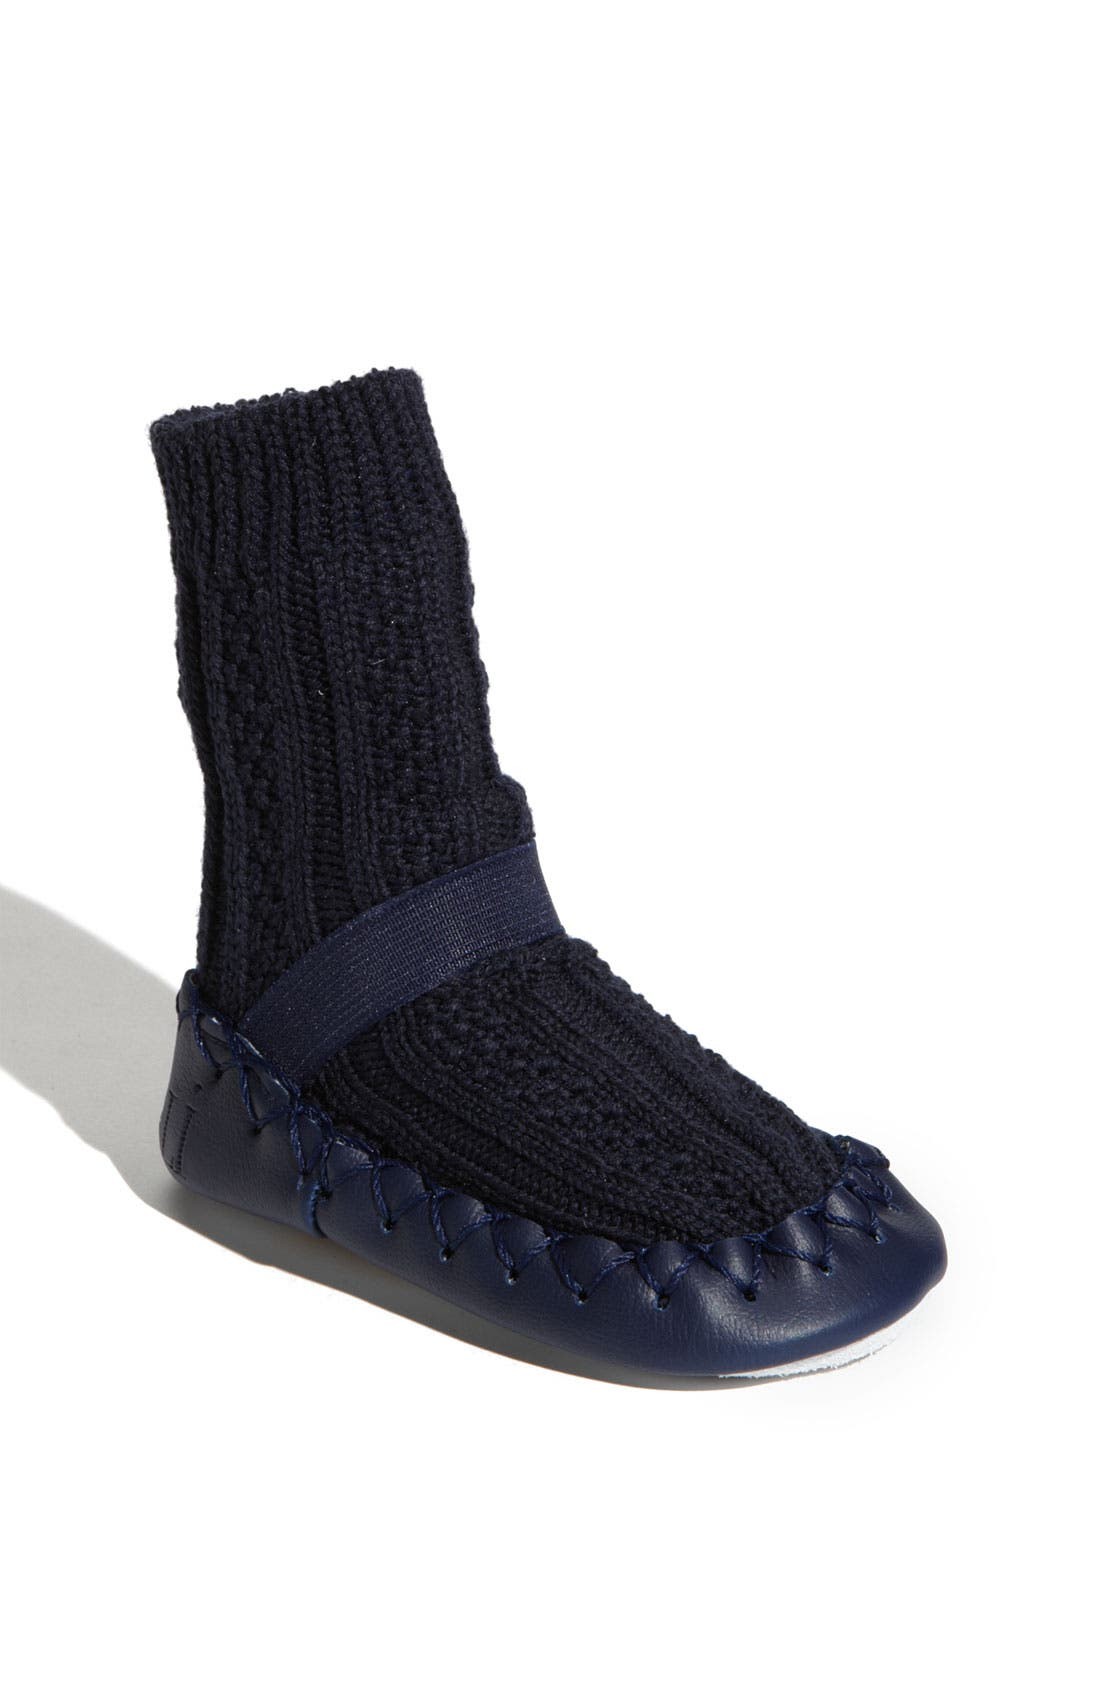 Main Image - Nowali Cable Knit Moccasins (Baby & Walker)